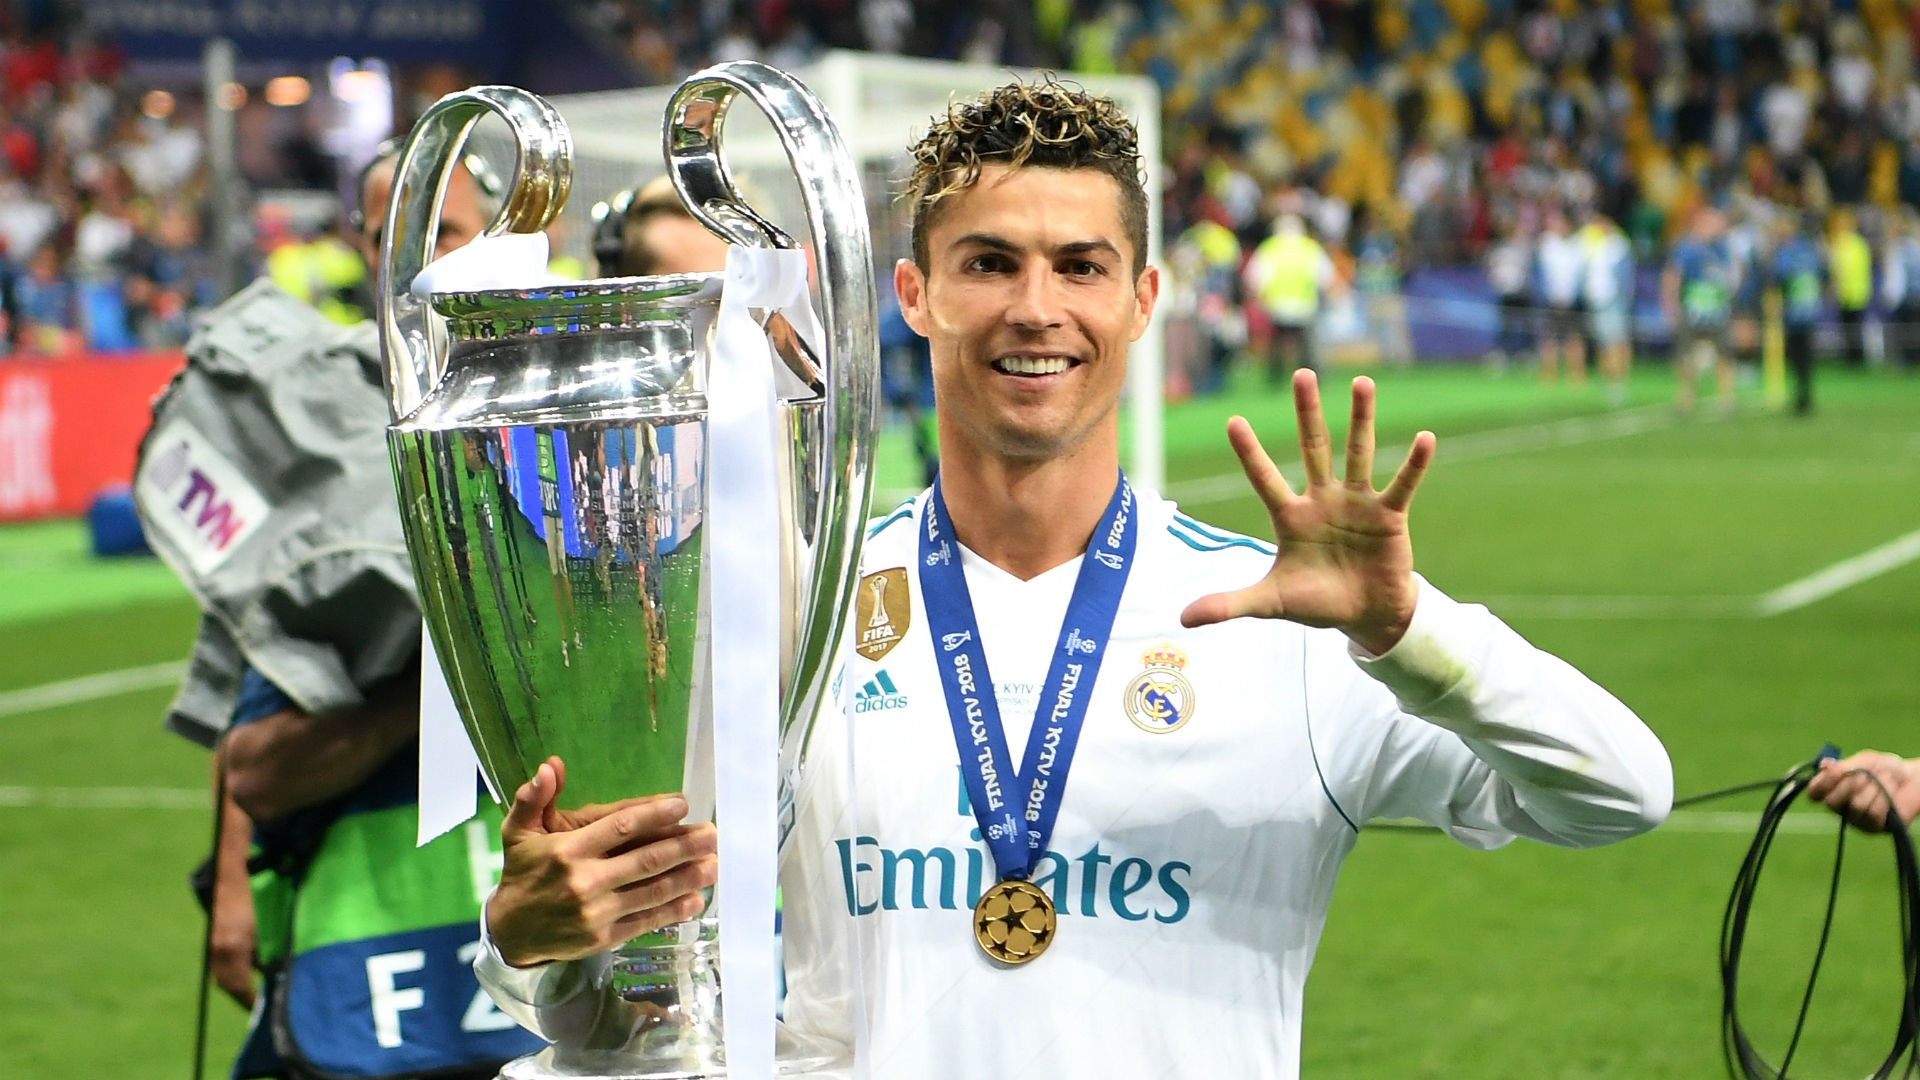 Cristiano Ronaldo leaving Real Madrid to join Italian club Juventus